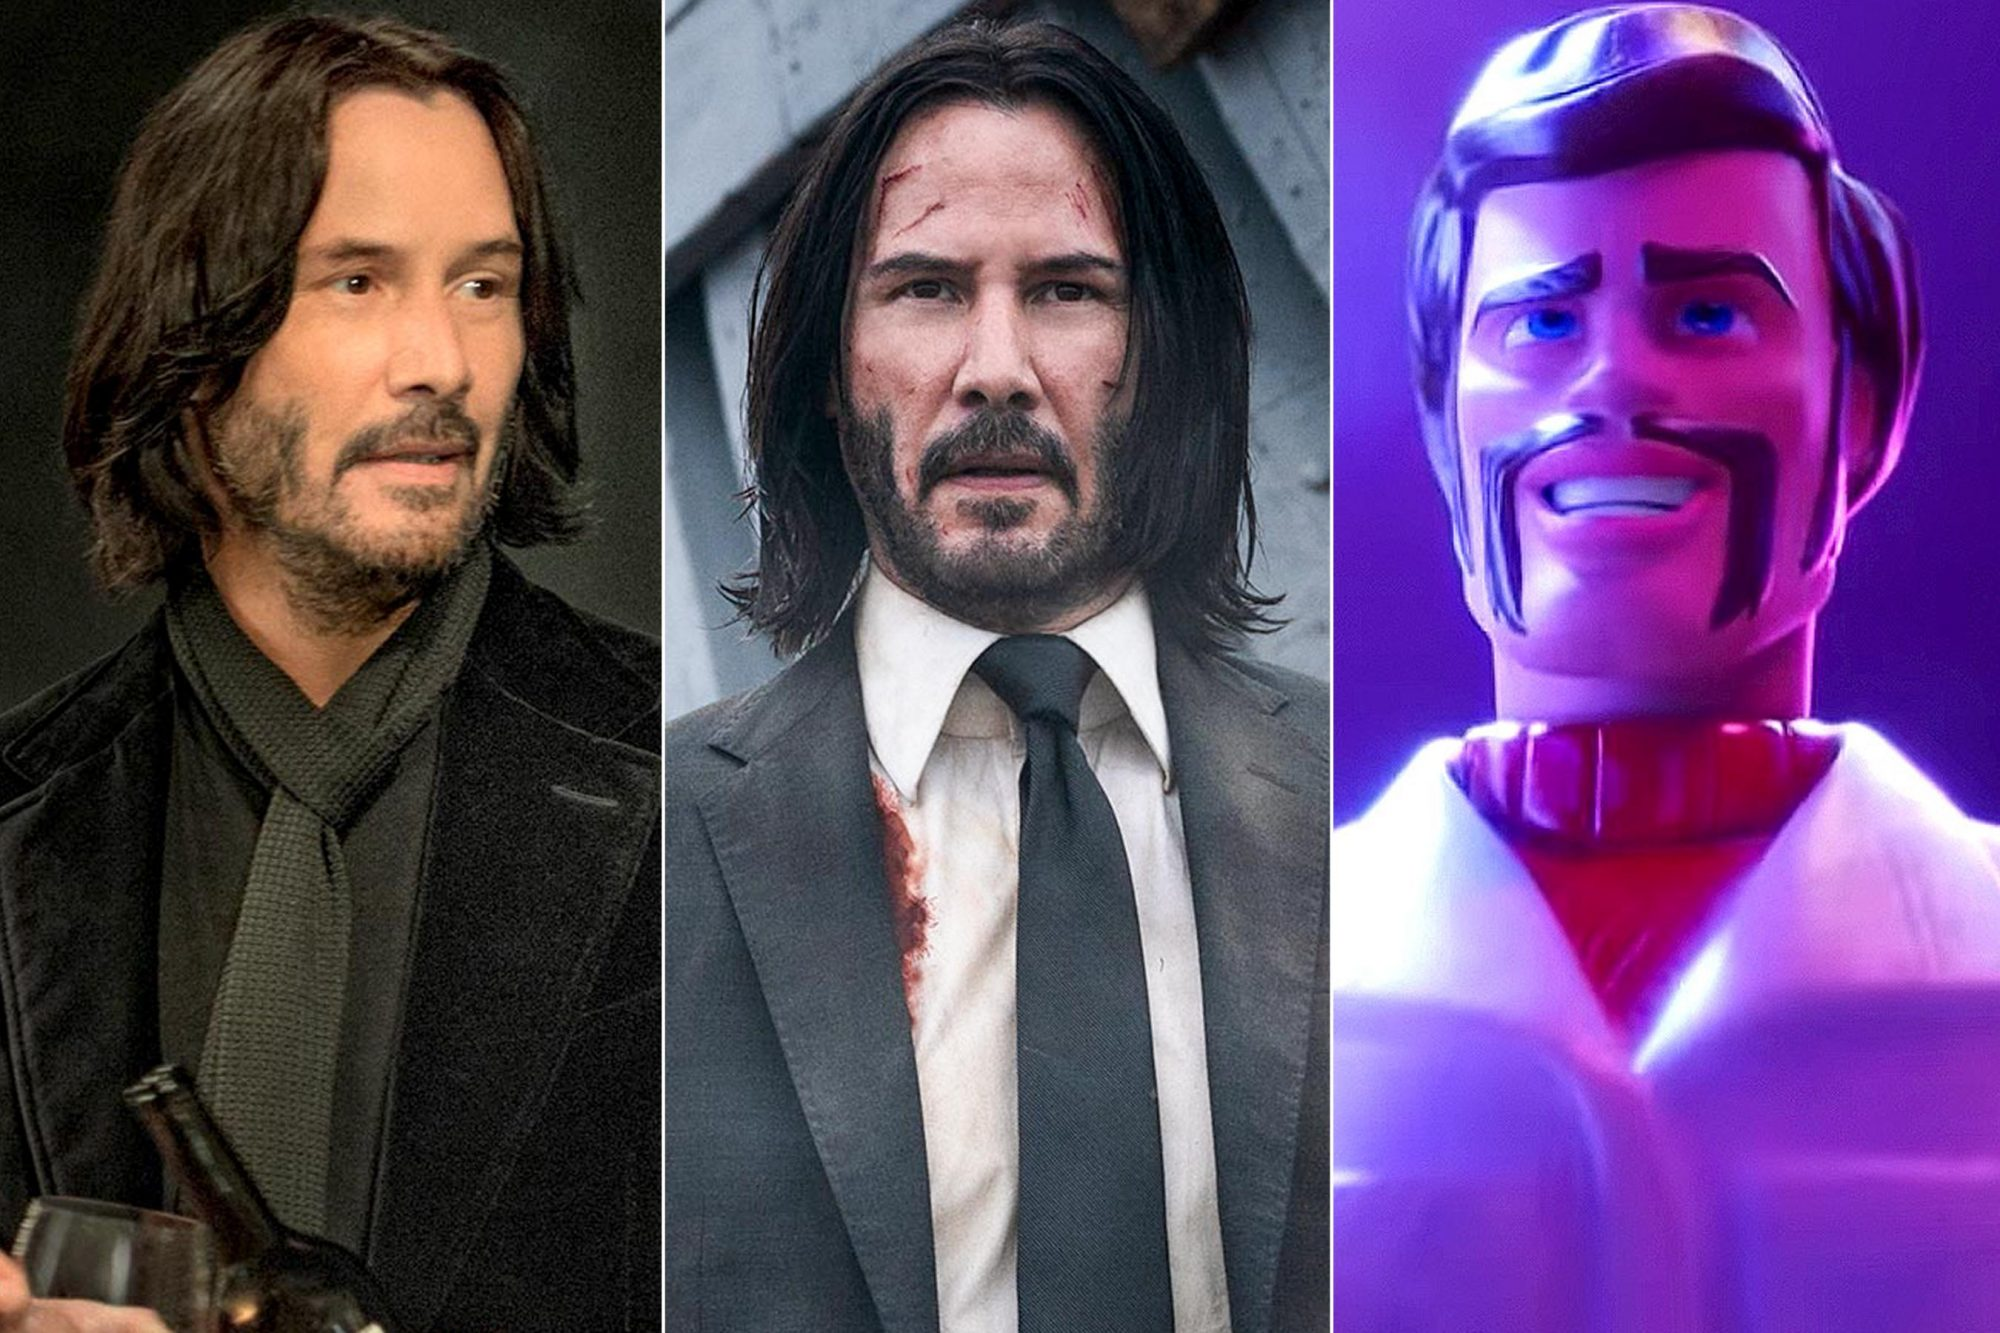 Always Be My Maybe SEASON Always Be My Maybe PHOTO CREDIT Doane Gregory / Netflix PICTURED Keanu Reeves Keanu Reeves stars as 'John Wick' in JOHN WICK: CHAPTER 3 - PARABELLUM. Photo Credit: Mark Rogers/Lionsgate Toy Story 4 (screen grab) Keanu Reeves https://www.youtube.com/watch?v=wmiIUN-7qhE CR: Disney/Pixar